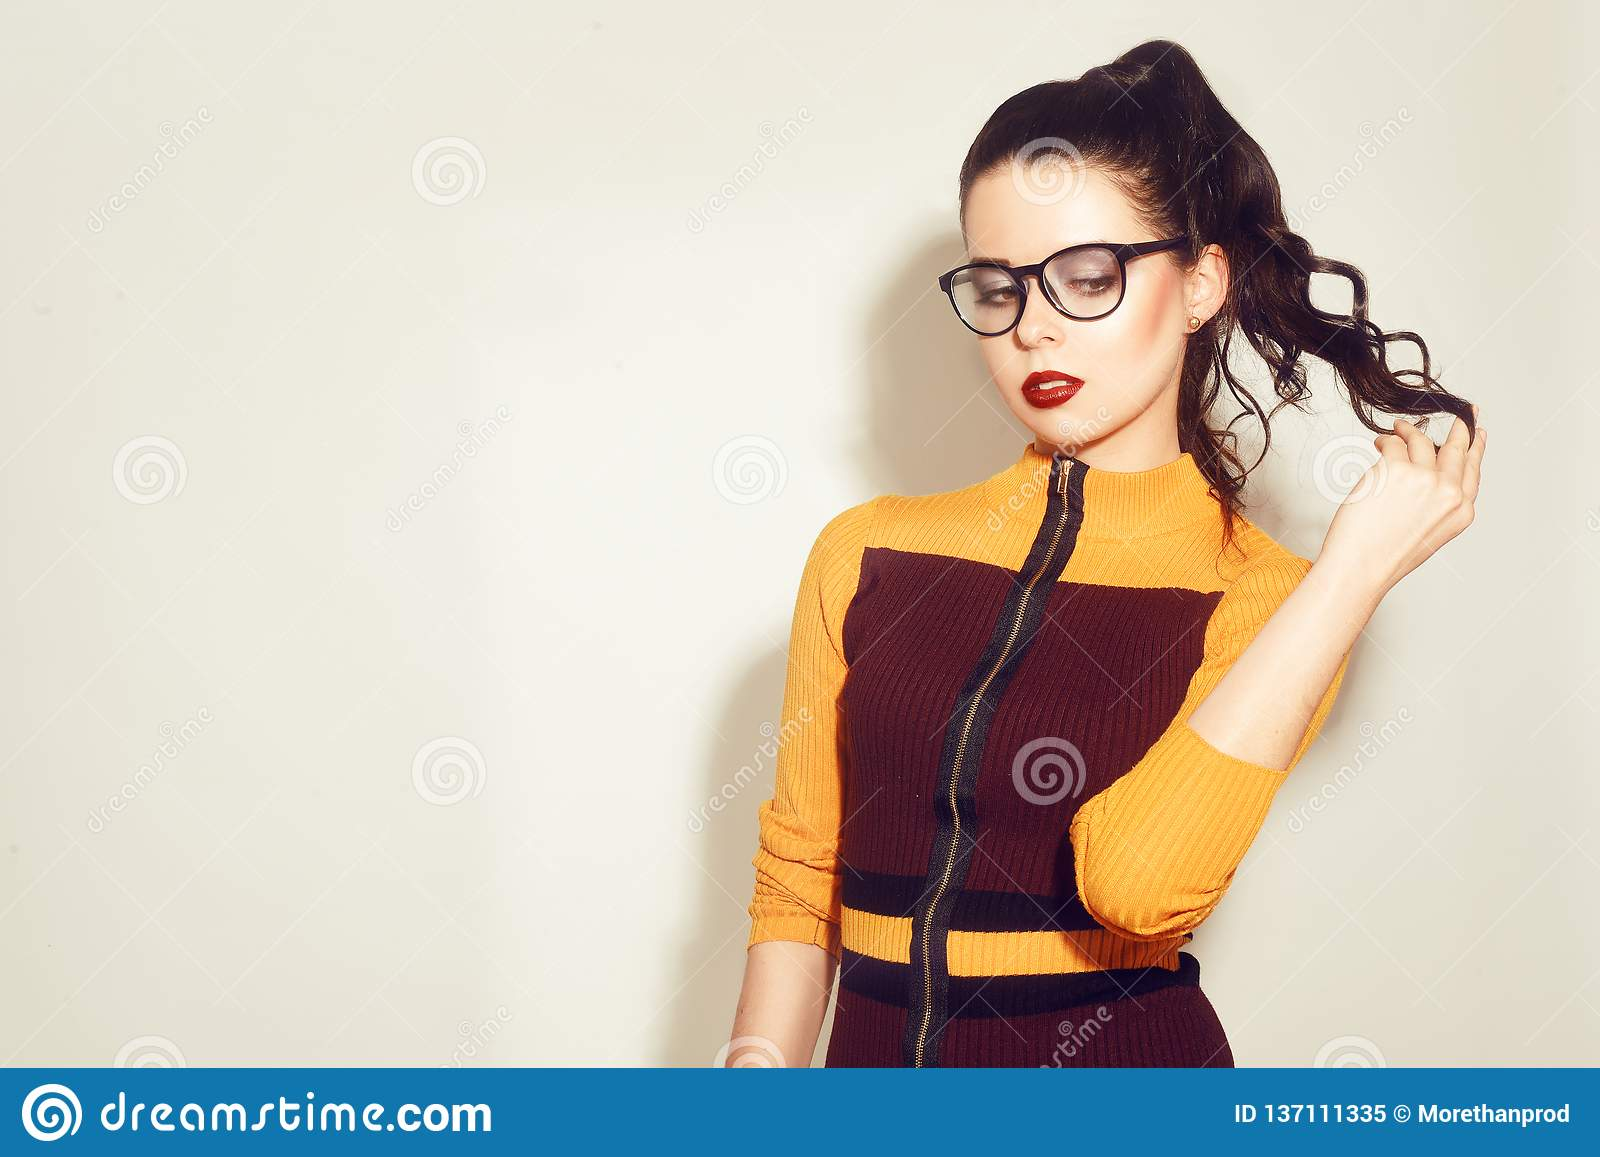 ccaa82d09ed Beauty Fashion brunette model girl wearing stylish glasses. woman with  perfect makeup